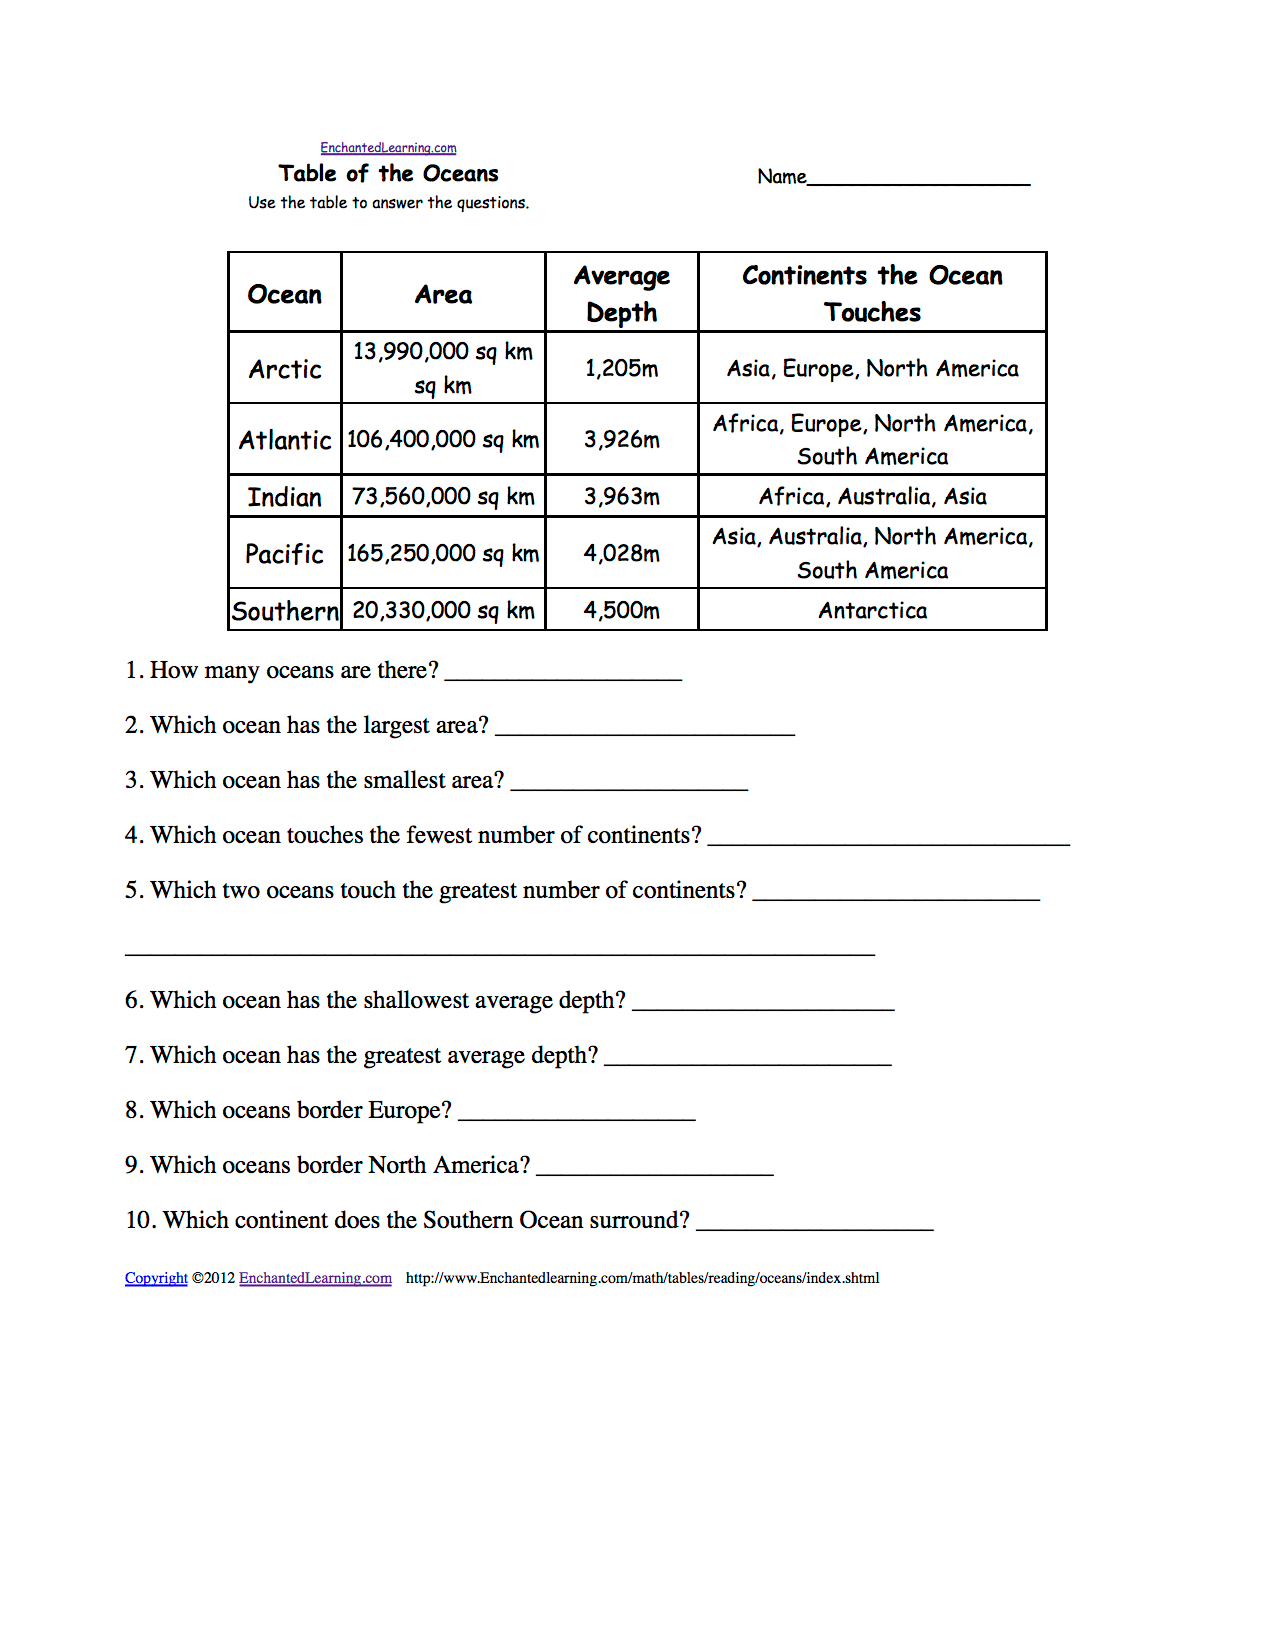 hight resolution of Table of the Oceans - Reading and Understanding Tables